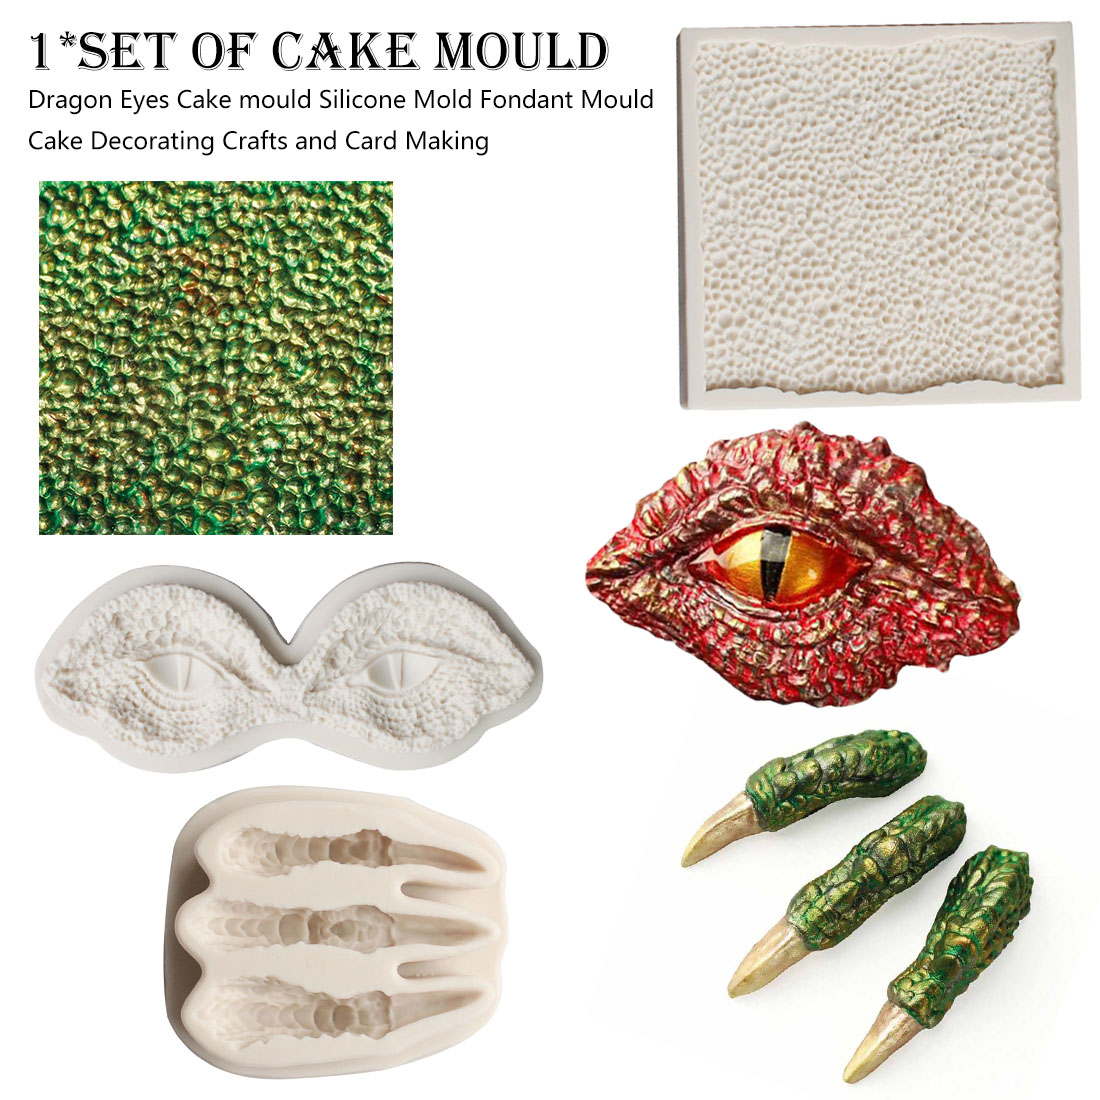 1pc Kitchen Gadgets Dragon Eyes Cake Mould Silicone Mold Fondant Mould Cake Decorating Crafts And Card Making